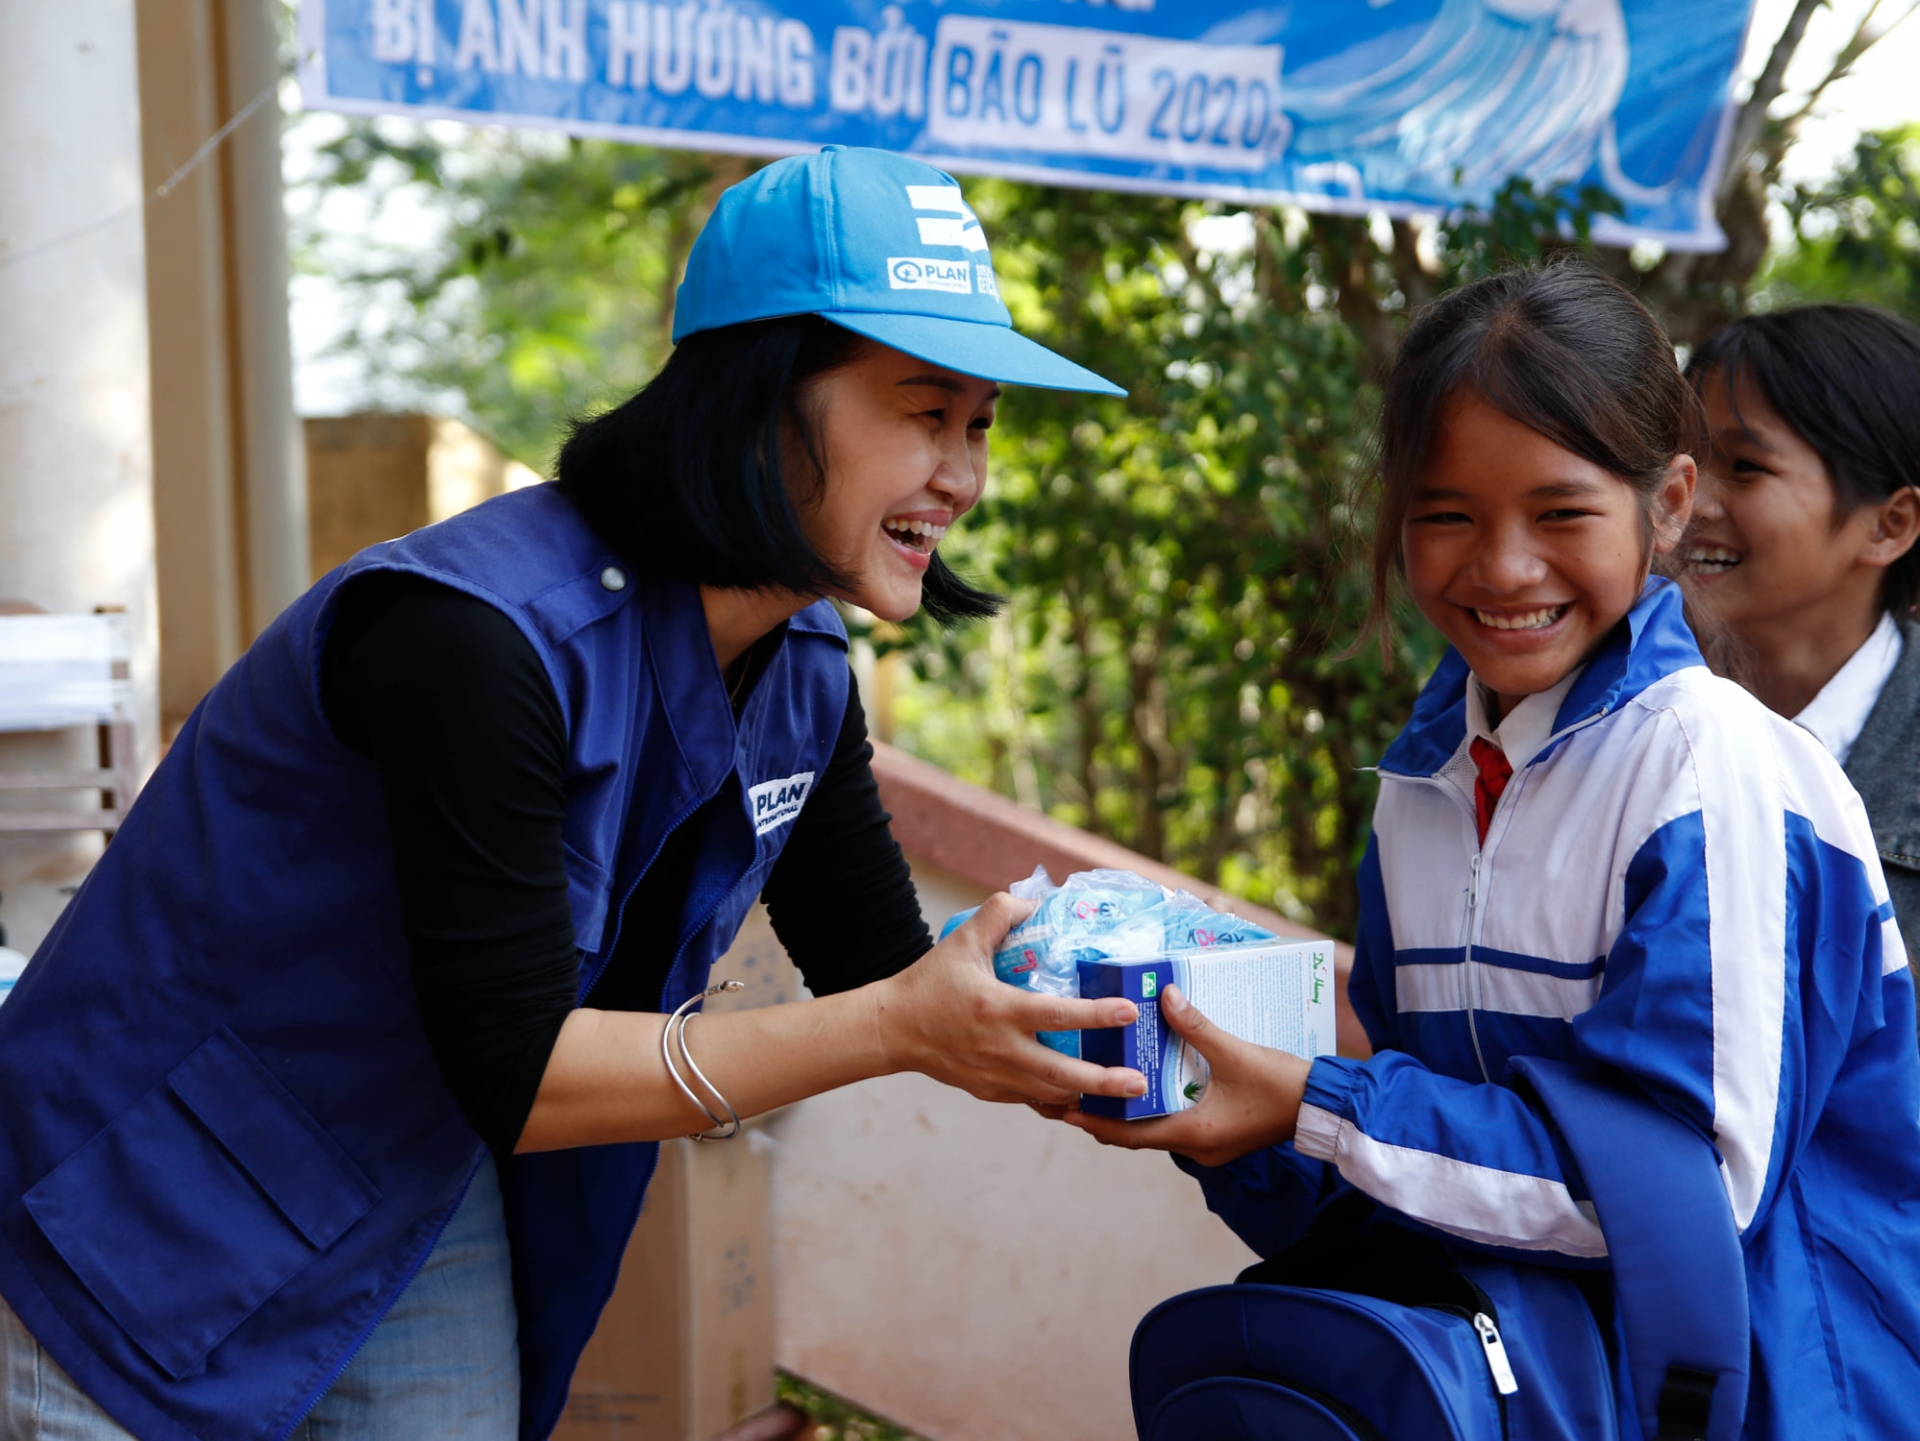 NGO provides more aid for localities hit by storms, floods